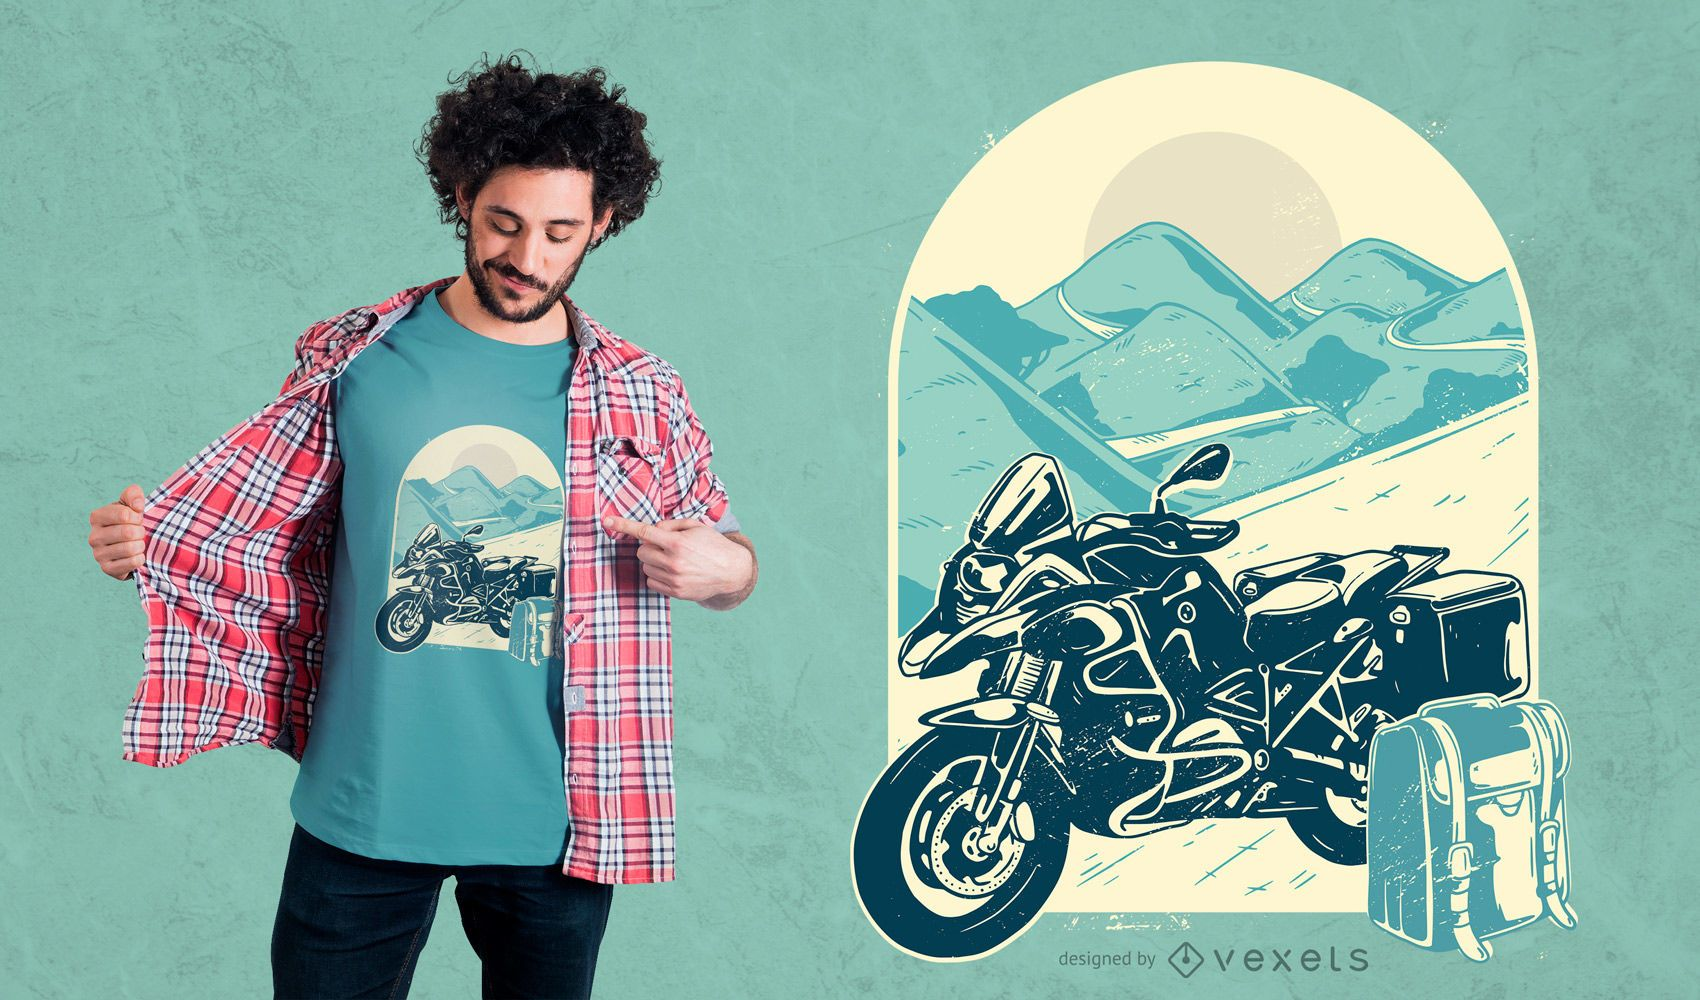 d37413f159ca Motorcycle Adventure T-shirt Design. Print ready. Download Large Image  1700x1000px. license image; user